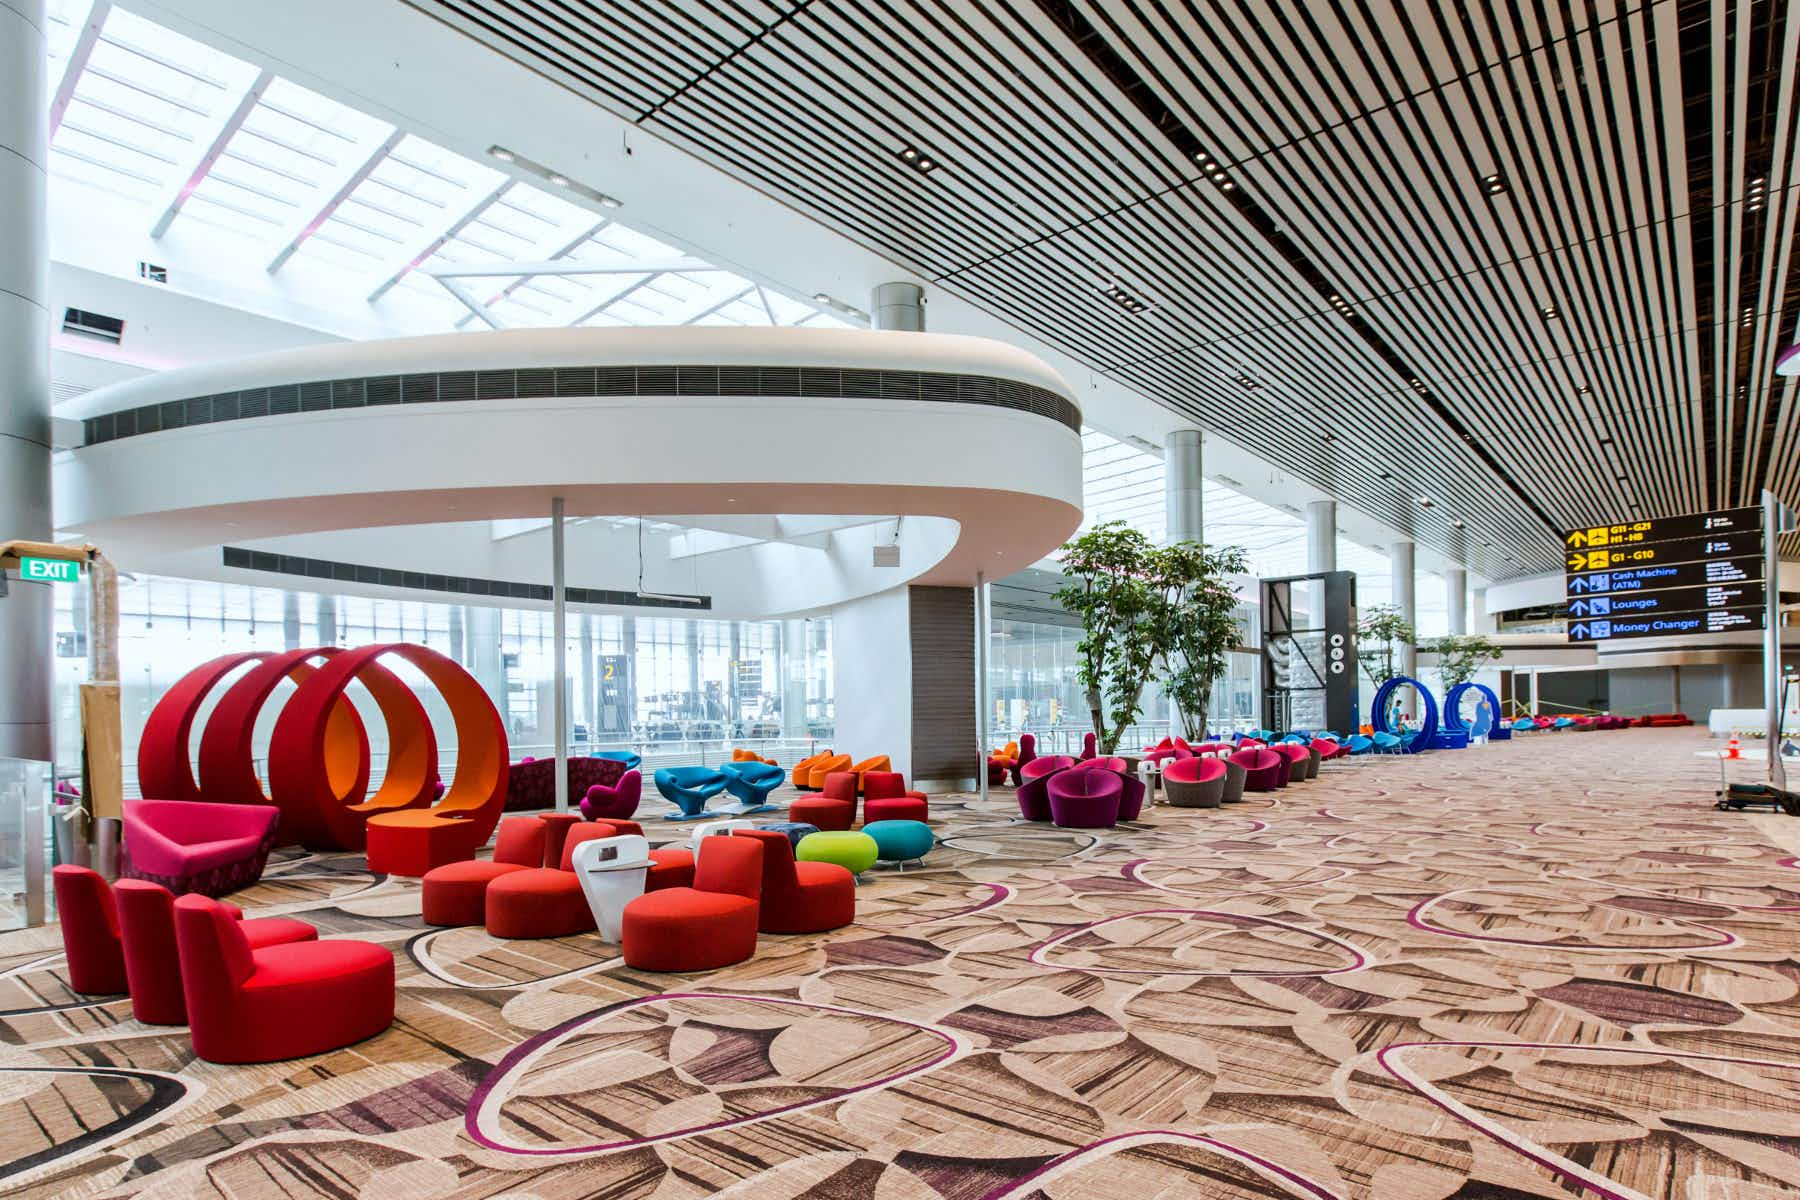 World's best airport has got even better with opening of new terminal